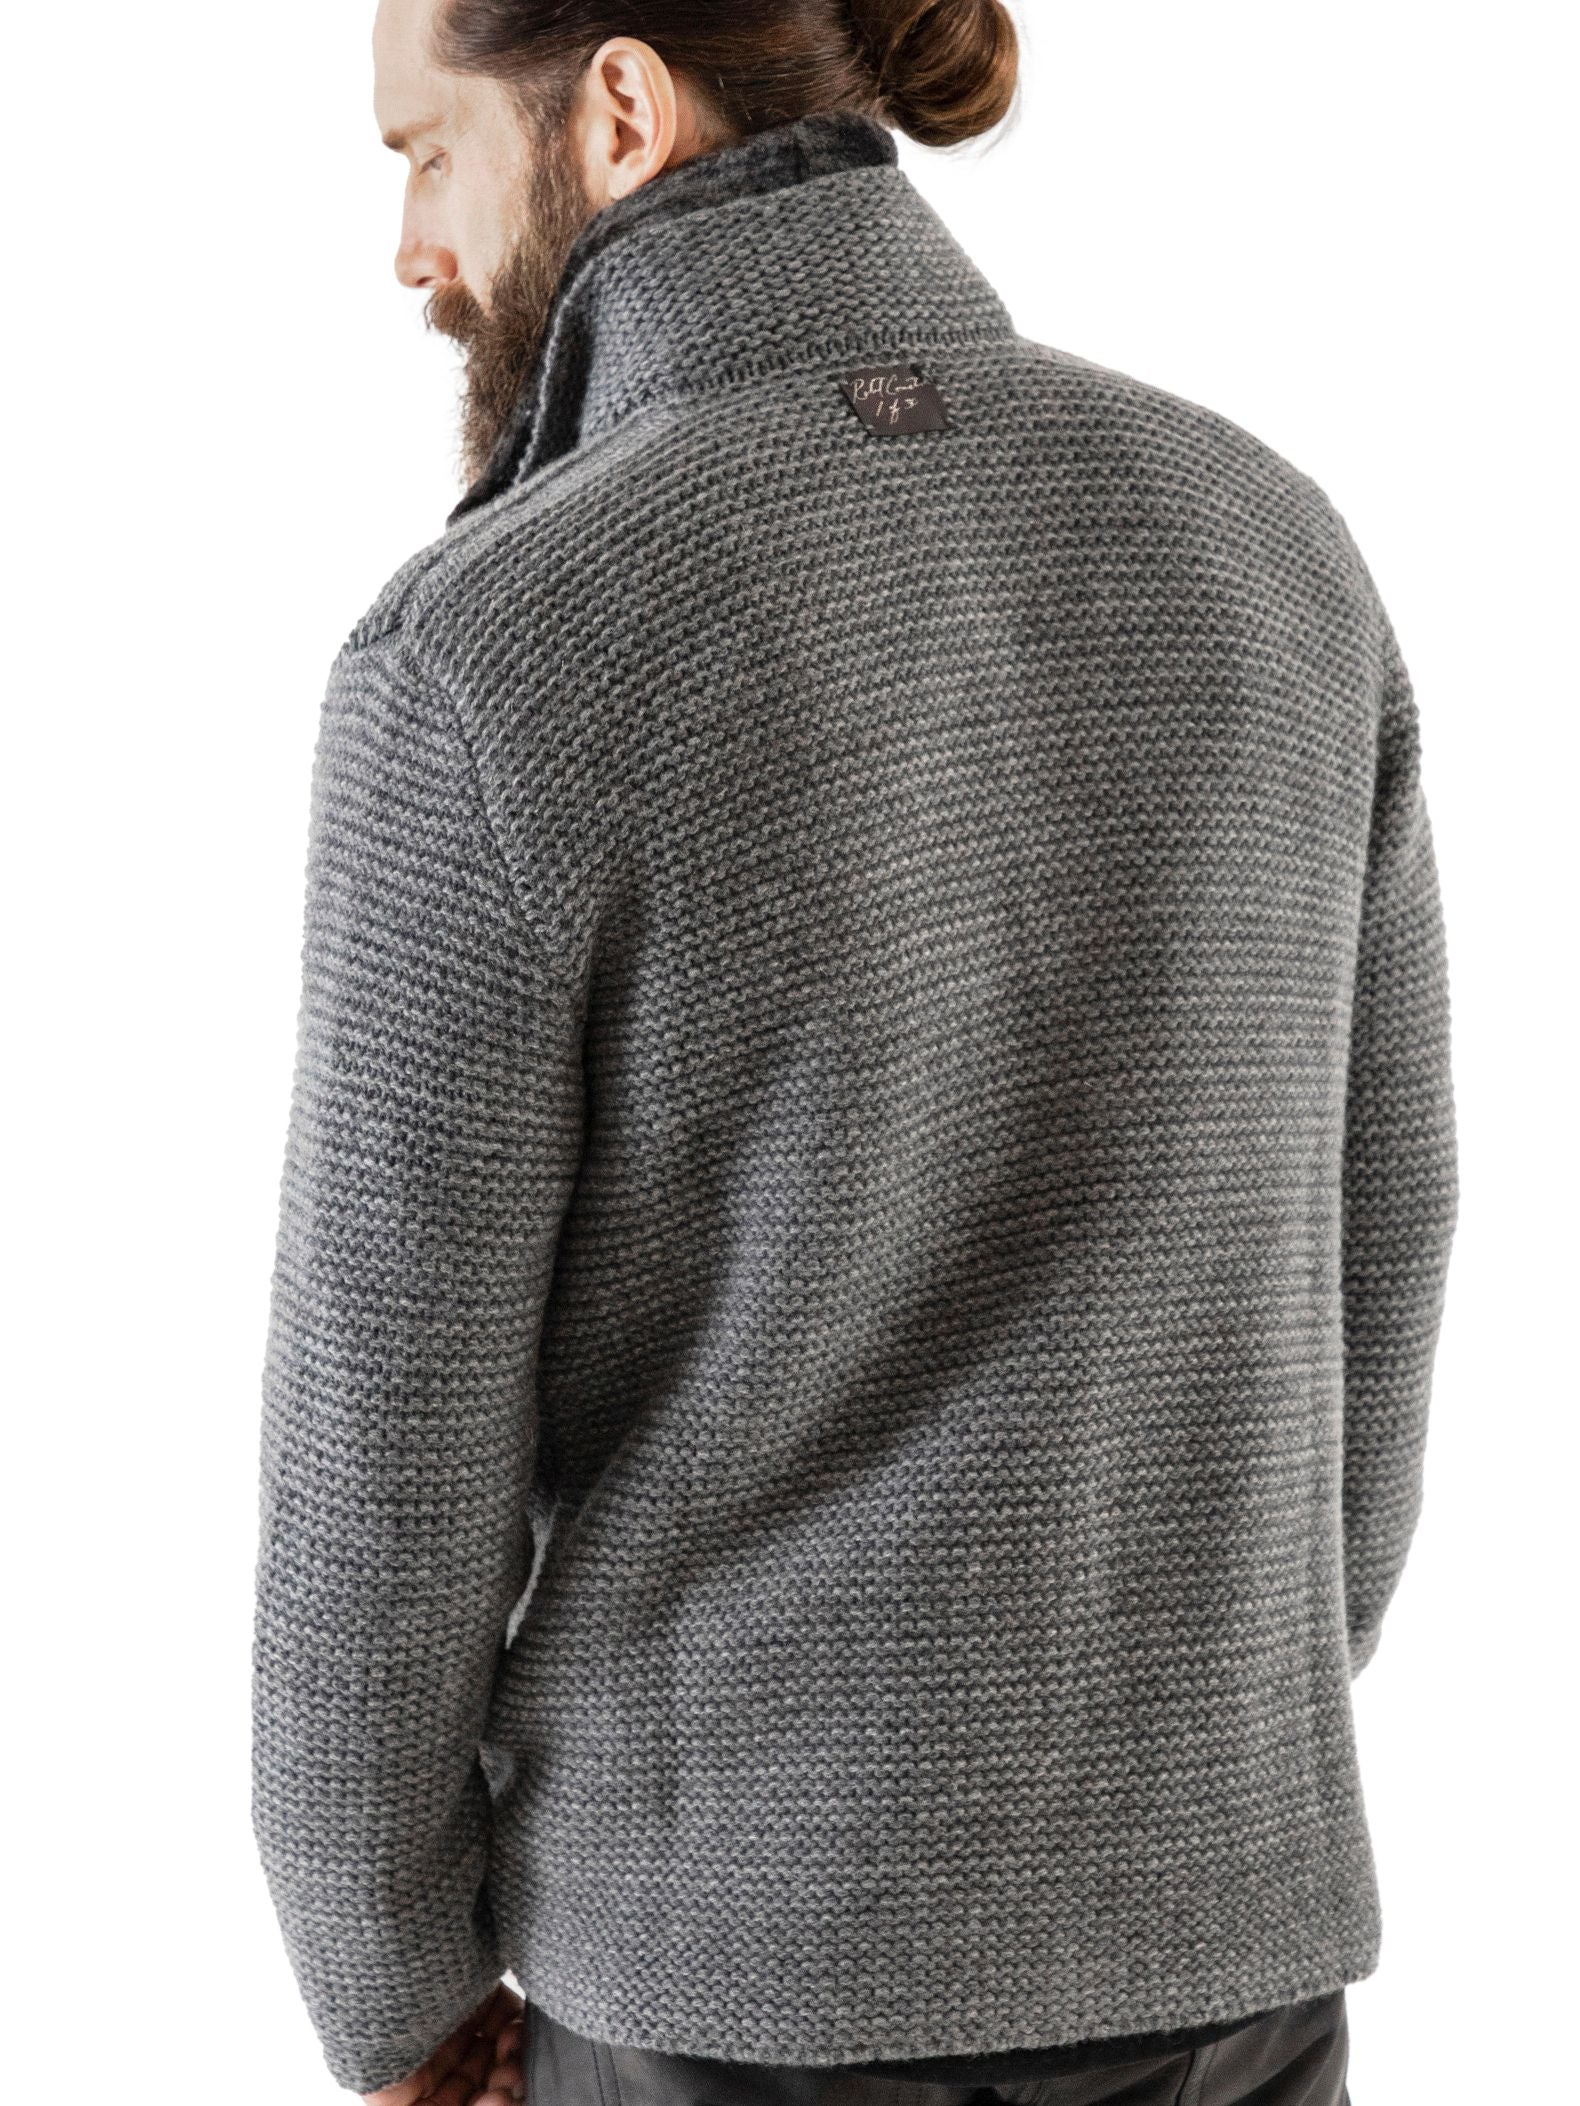 Structured yet lightweight 3-gauge cashmere